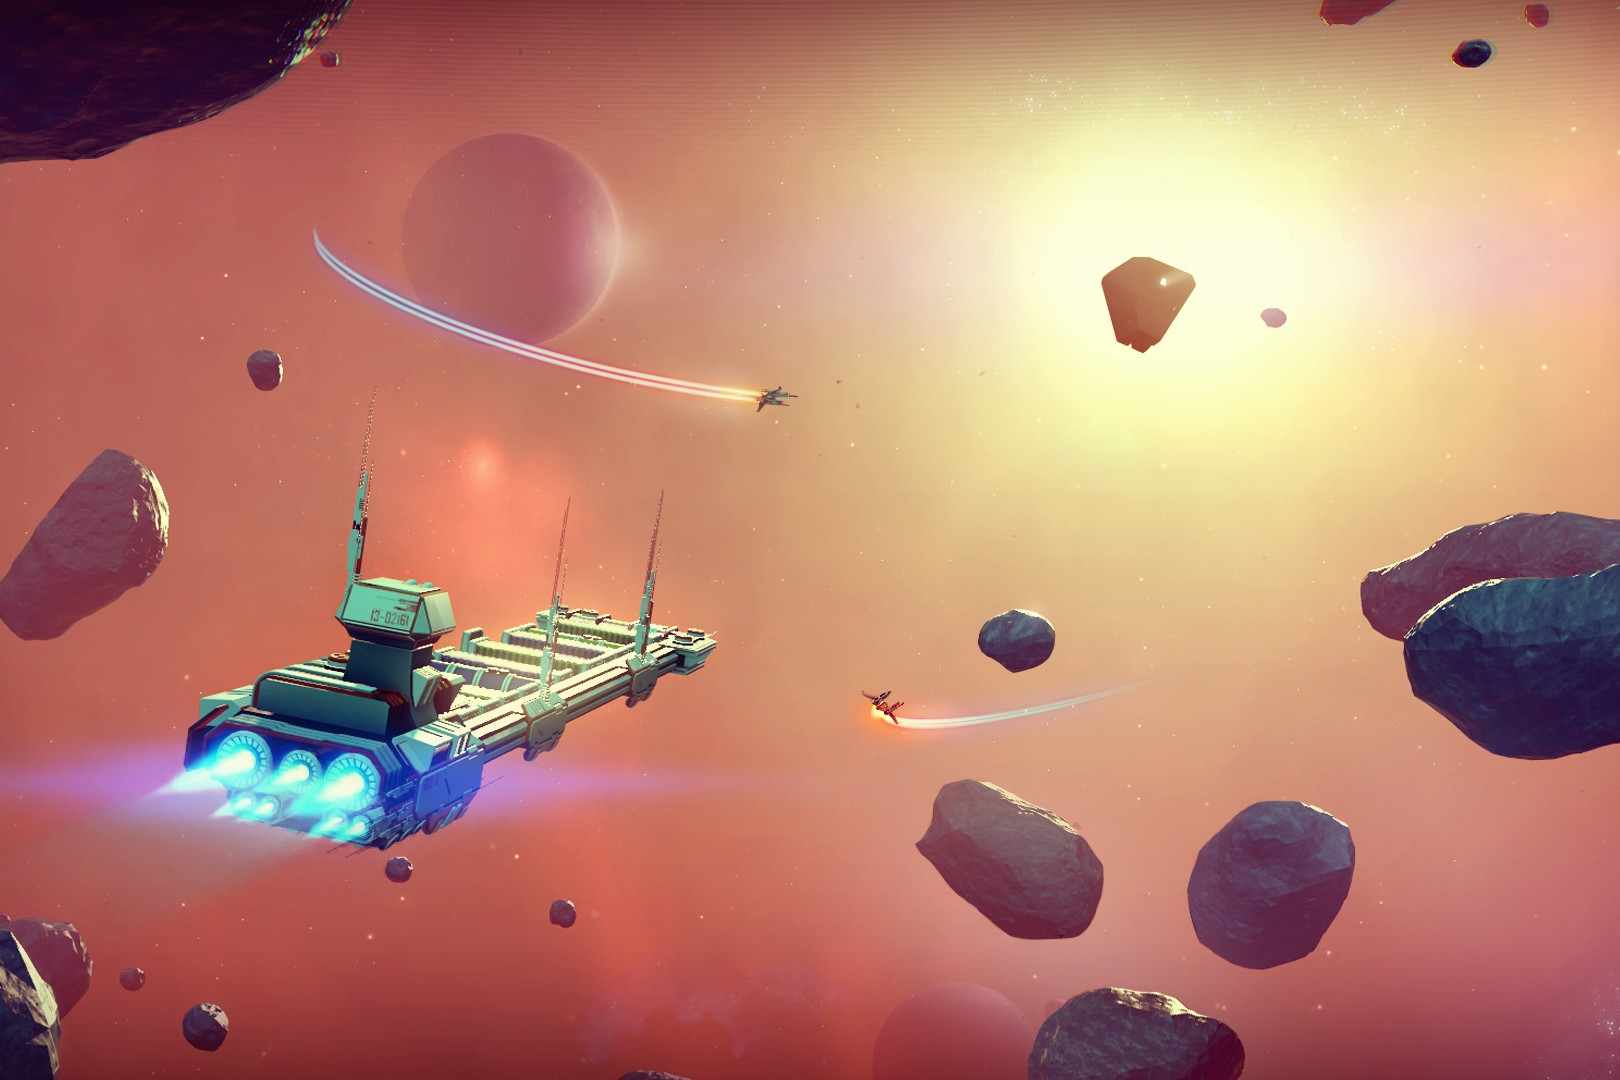 No Man's Sky And The Art Of Designing A Universe Within A Video Game